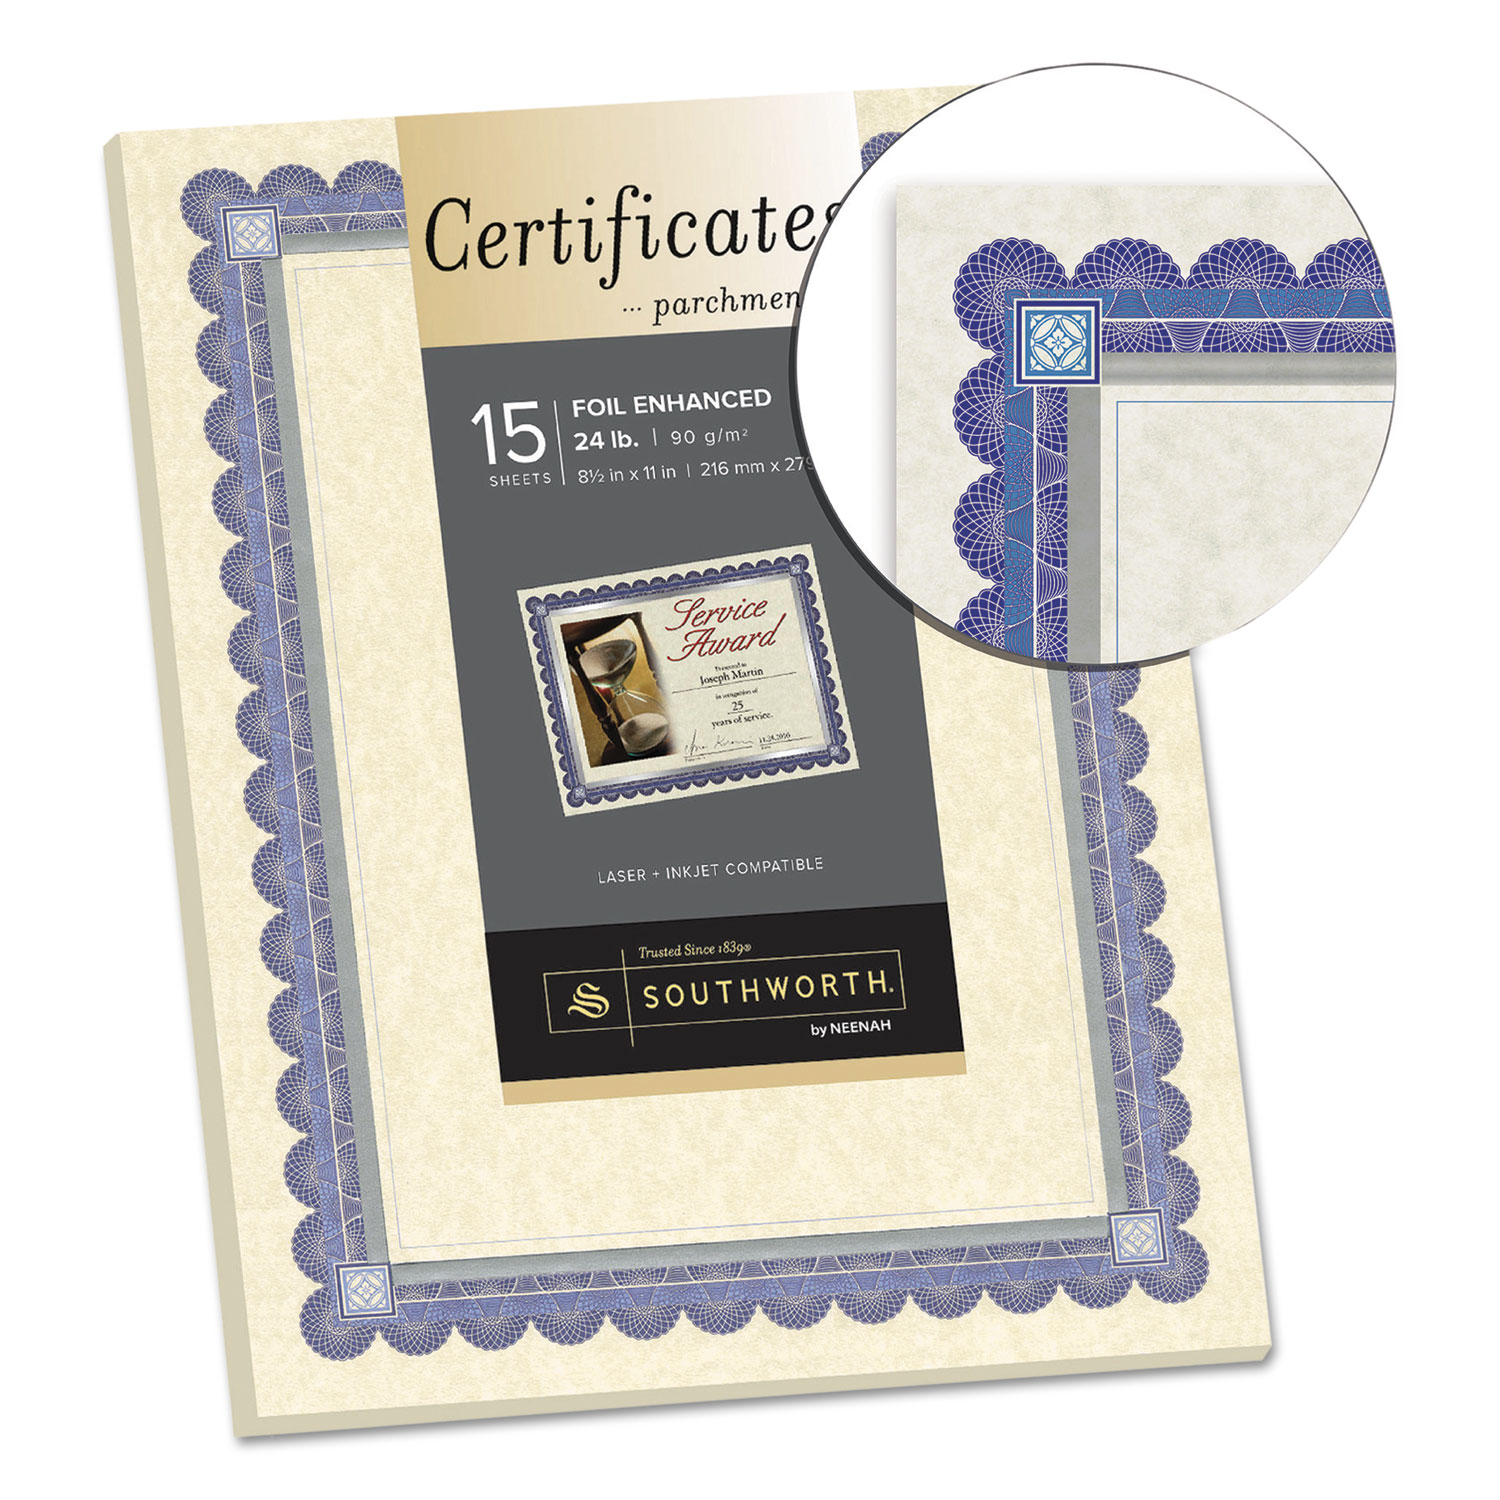 Foil-Enhanced Parchment Certificate by Southworth® SOUCT1R ...